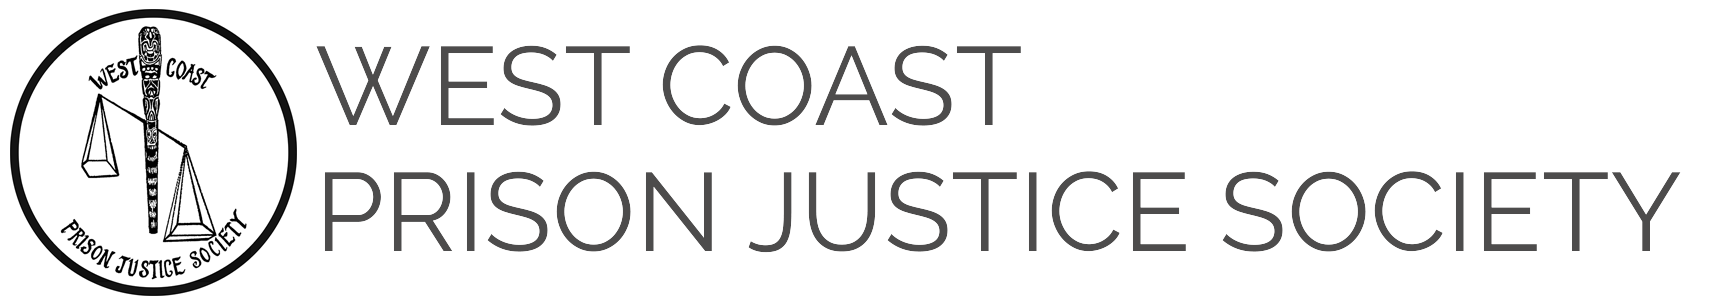 News - West Coast Prison Justice Society